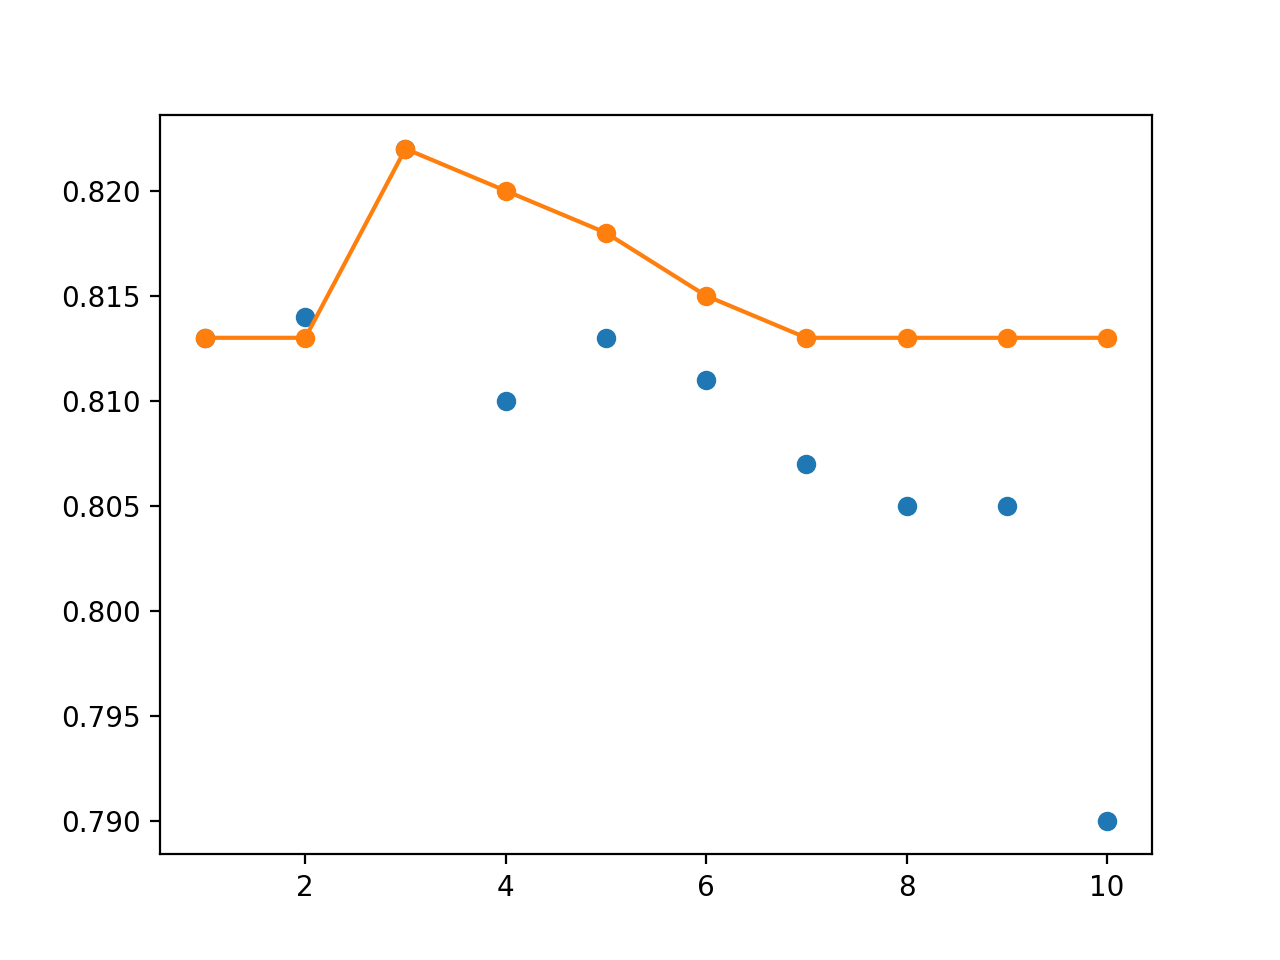 Line Plot of Single Snapshot Models (blue dots) vs Snapshot Ensembles of Varied Sized (orange line)